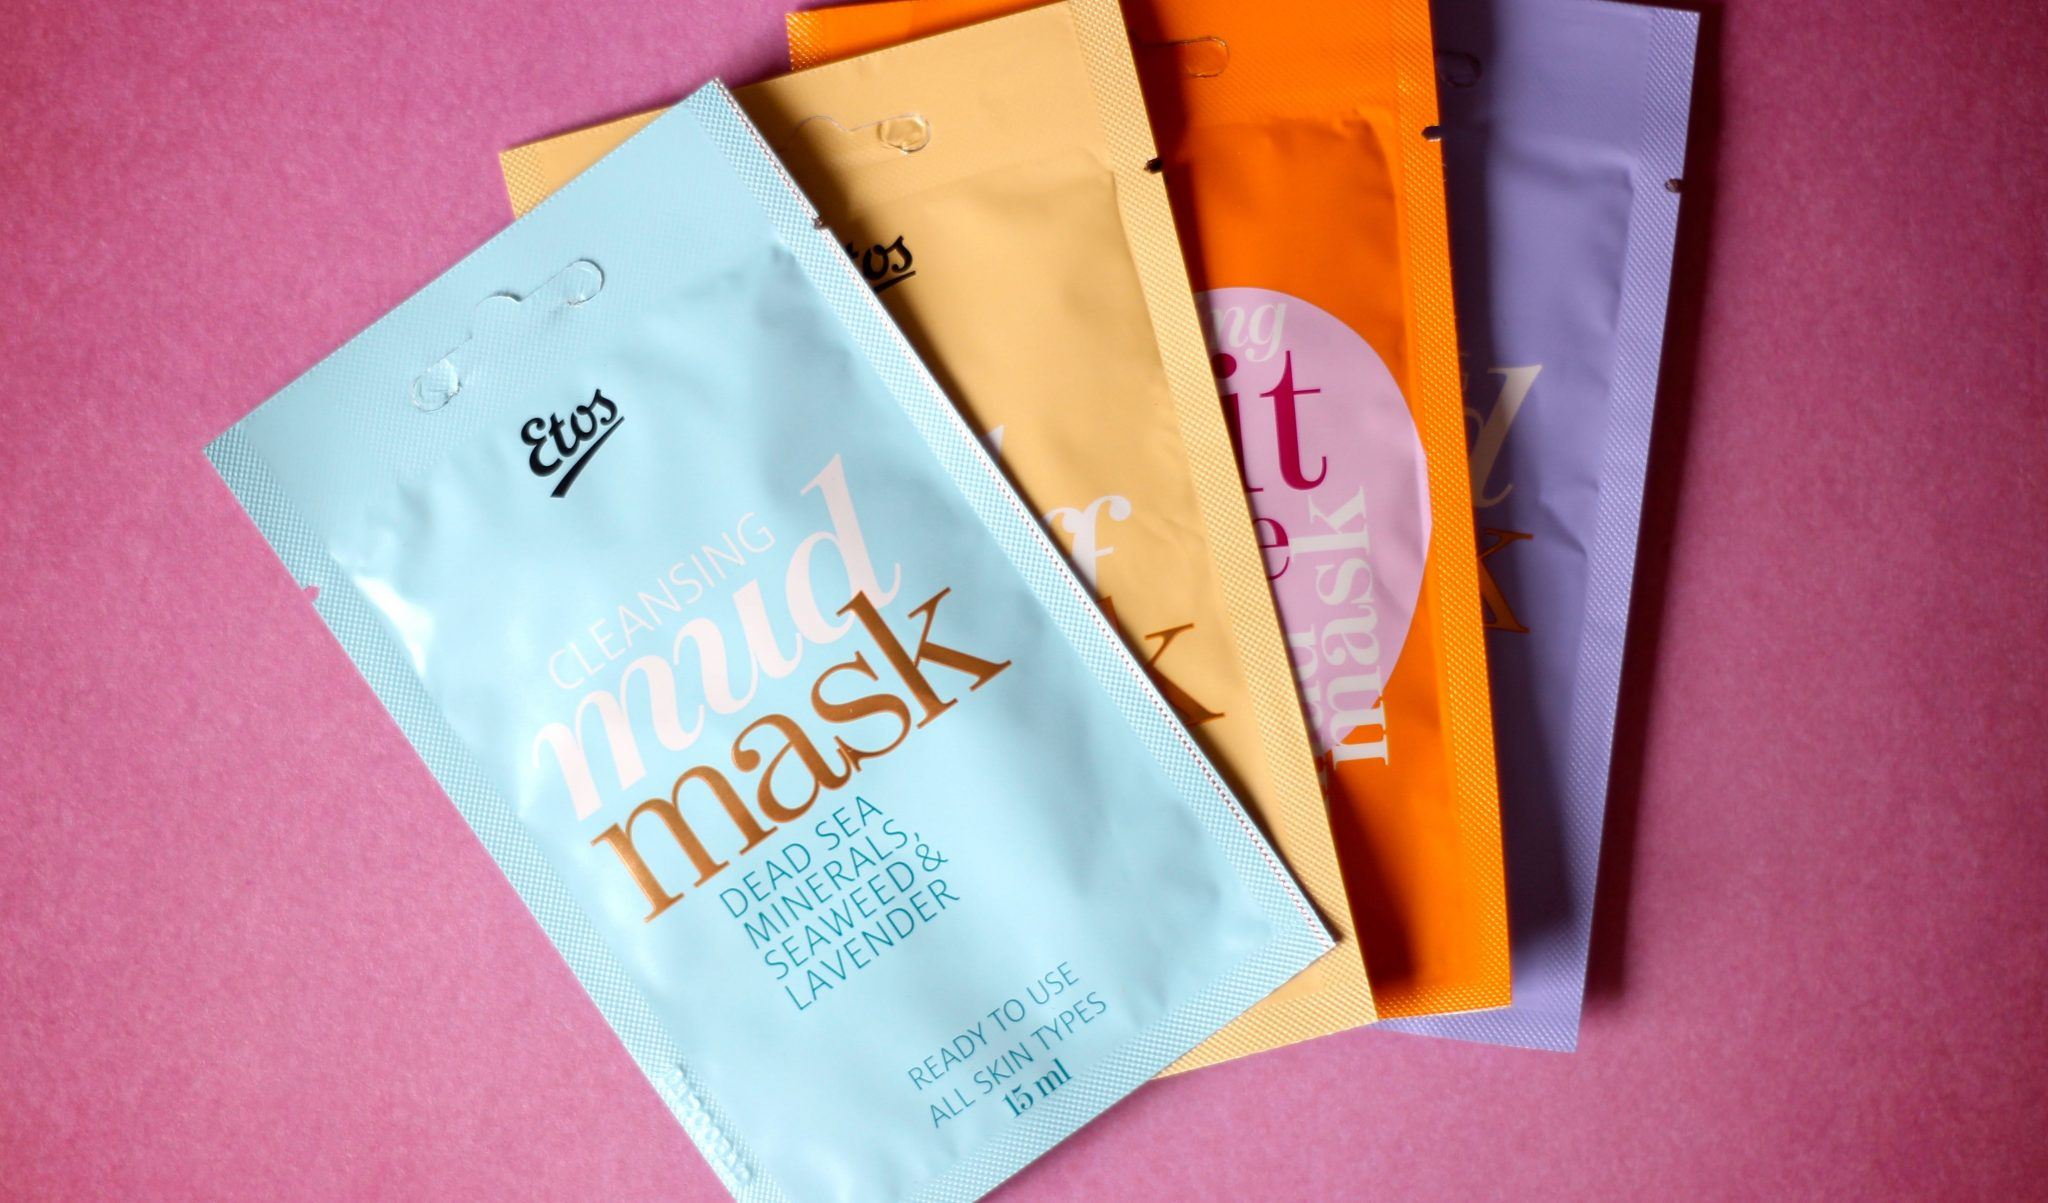 Etos Cleansing Mud Mask